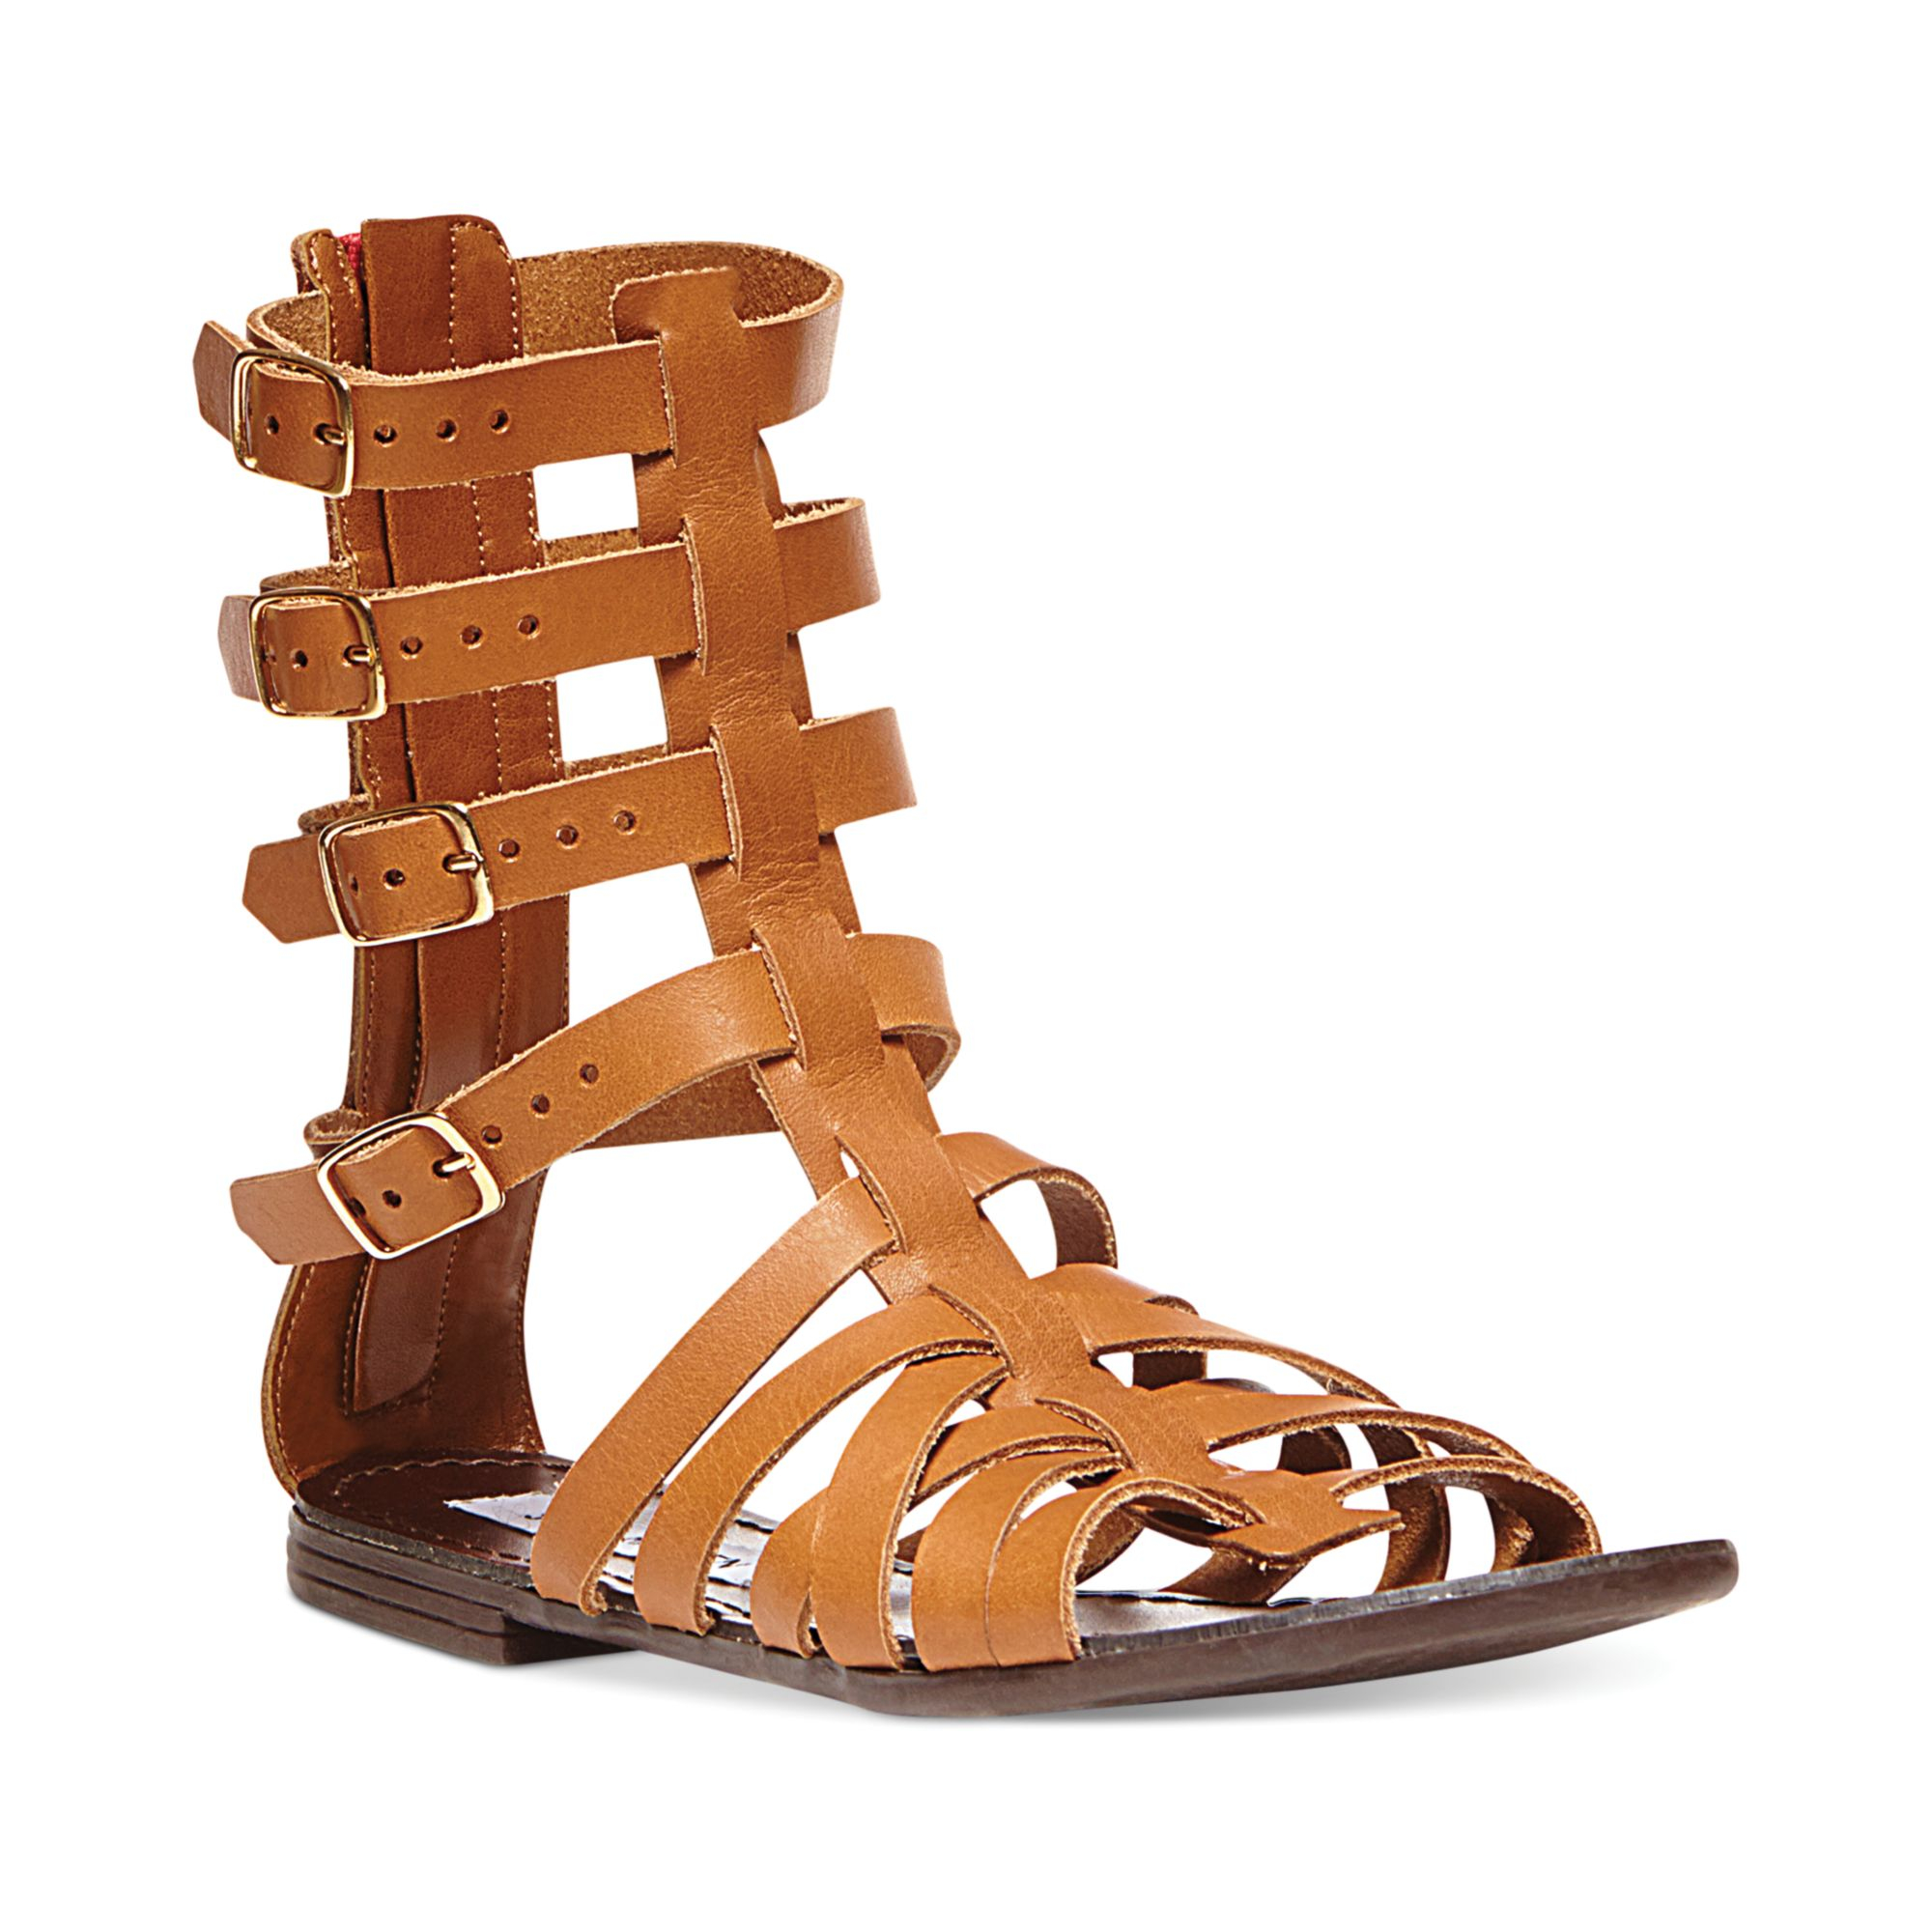 6396856428f Gallery. Previously sold at  Macy s · Women s Gladiator Sandals ...